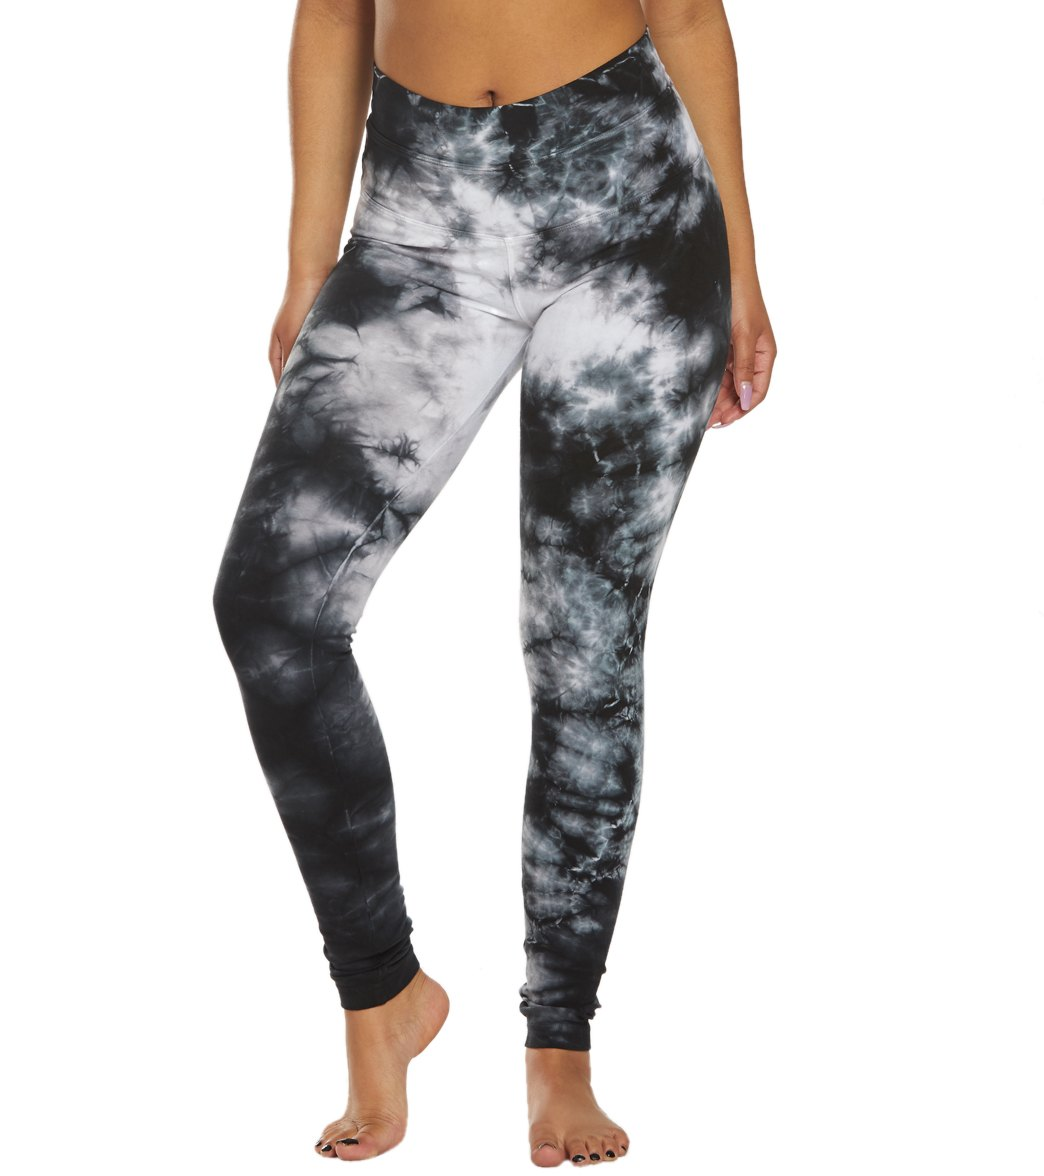 Hard Tail High Waisted Cotton Ankle Yoga Leggings - Wash Black/White Moon